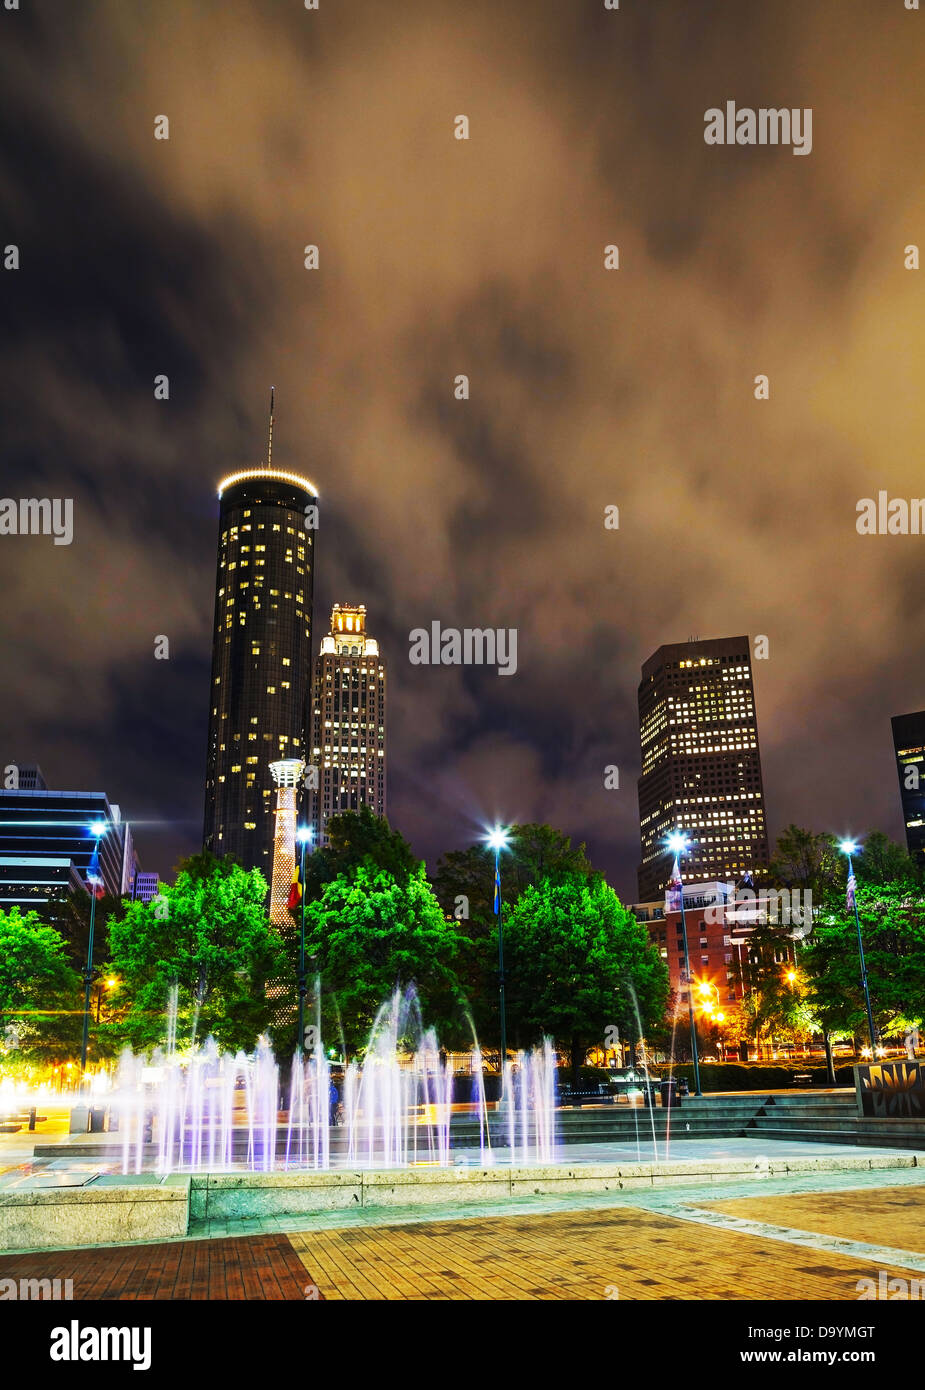 Downtown Atlanta, Georgia at night time - Stock Image